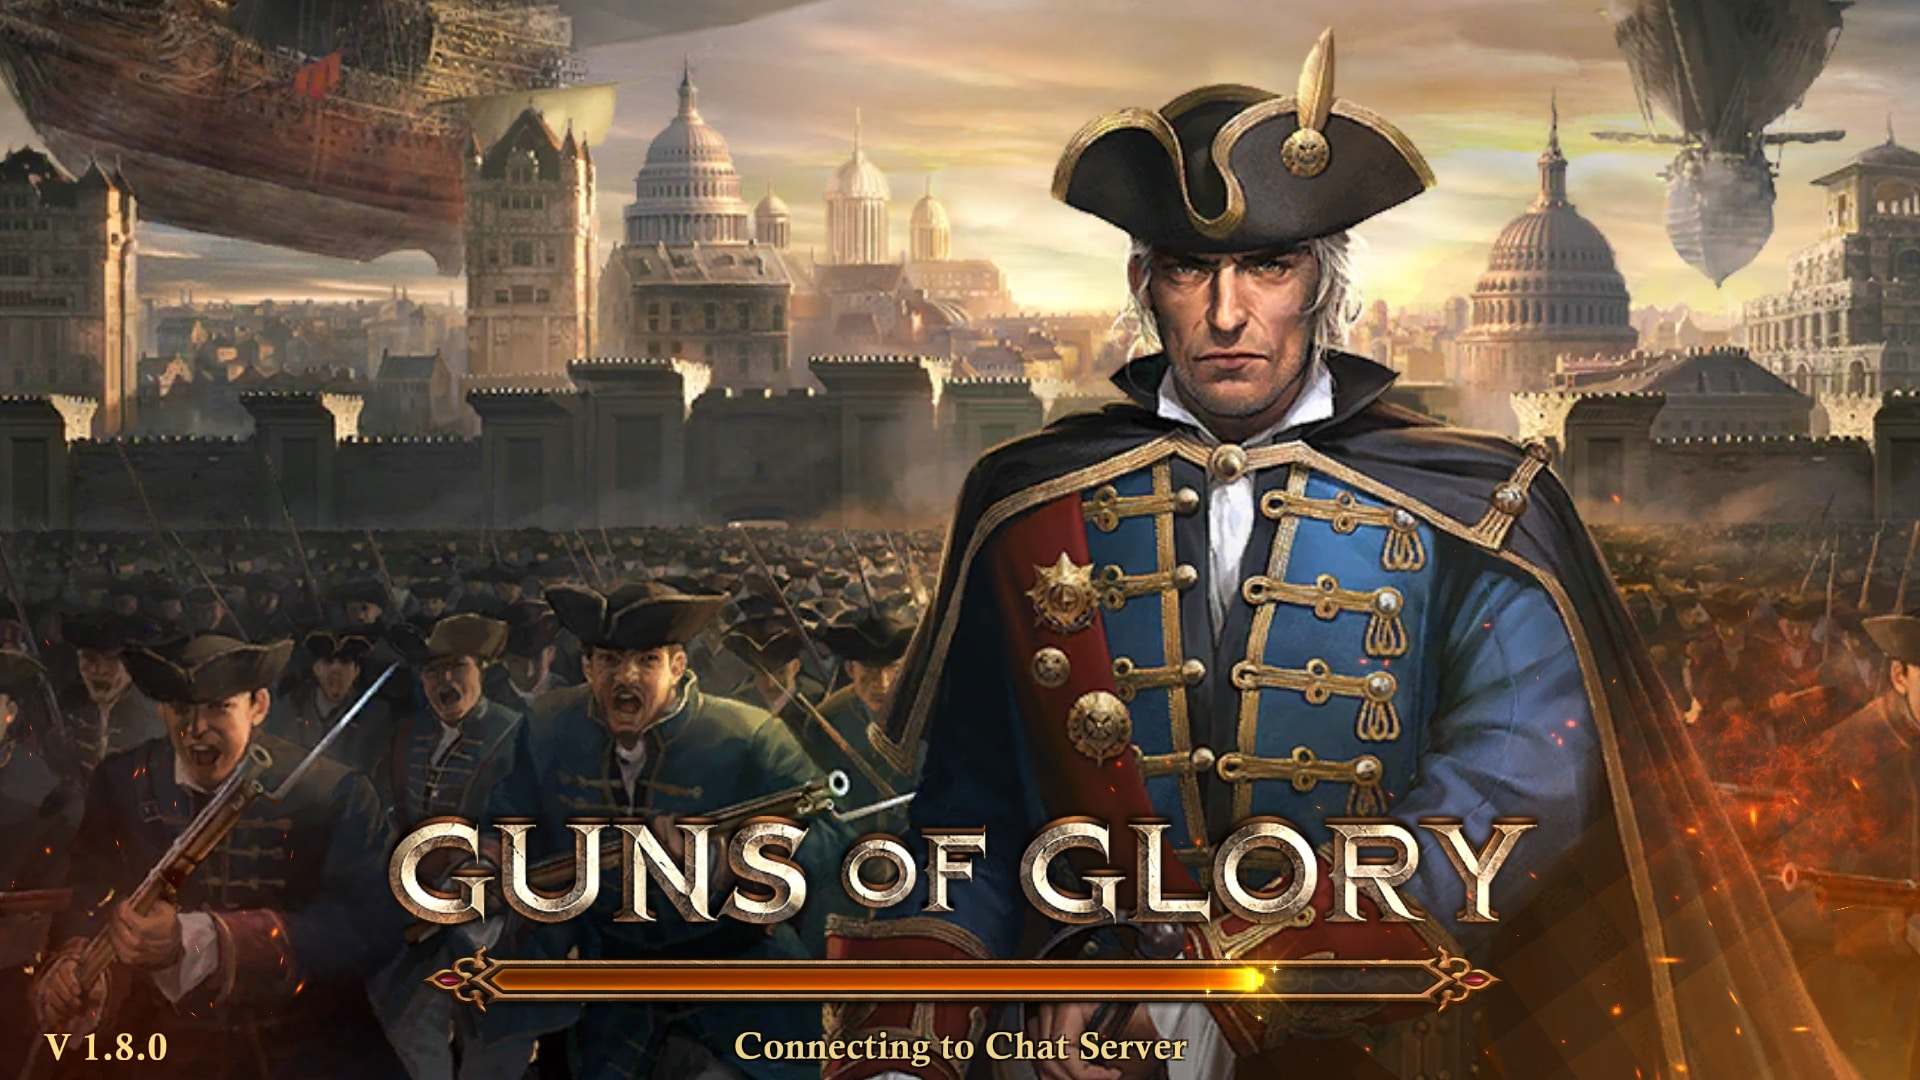 Download Guns of Glory APK- For Android and iOS 4